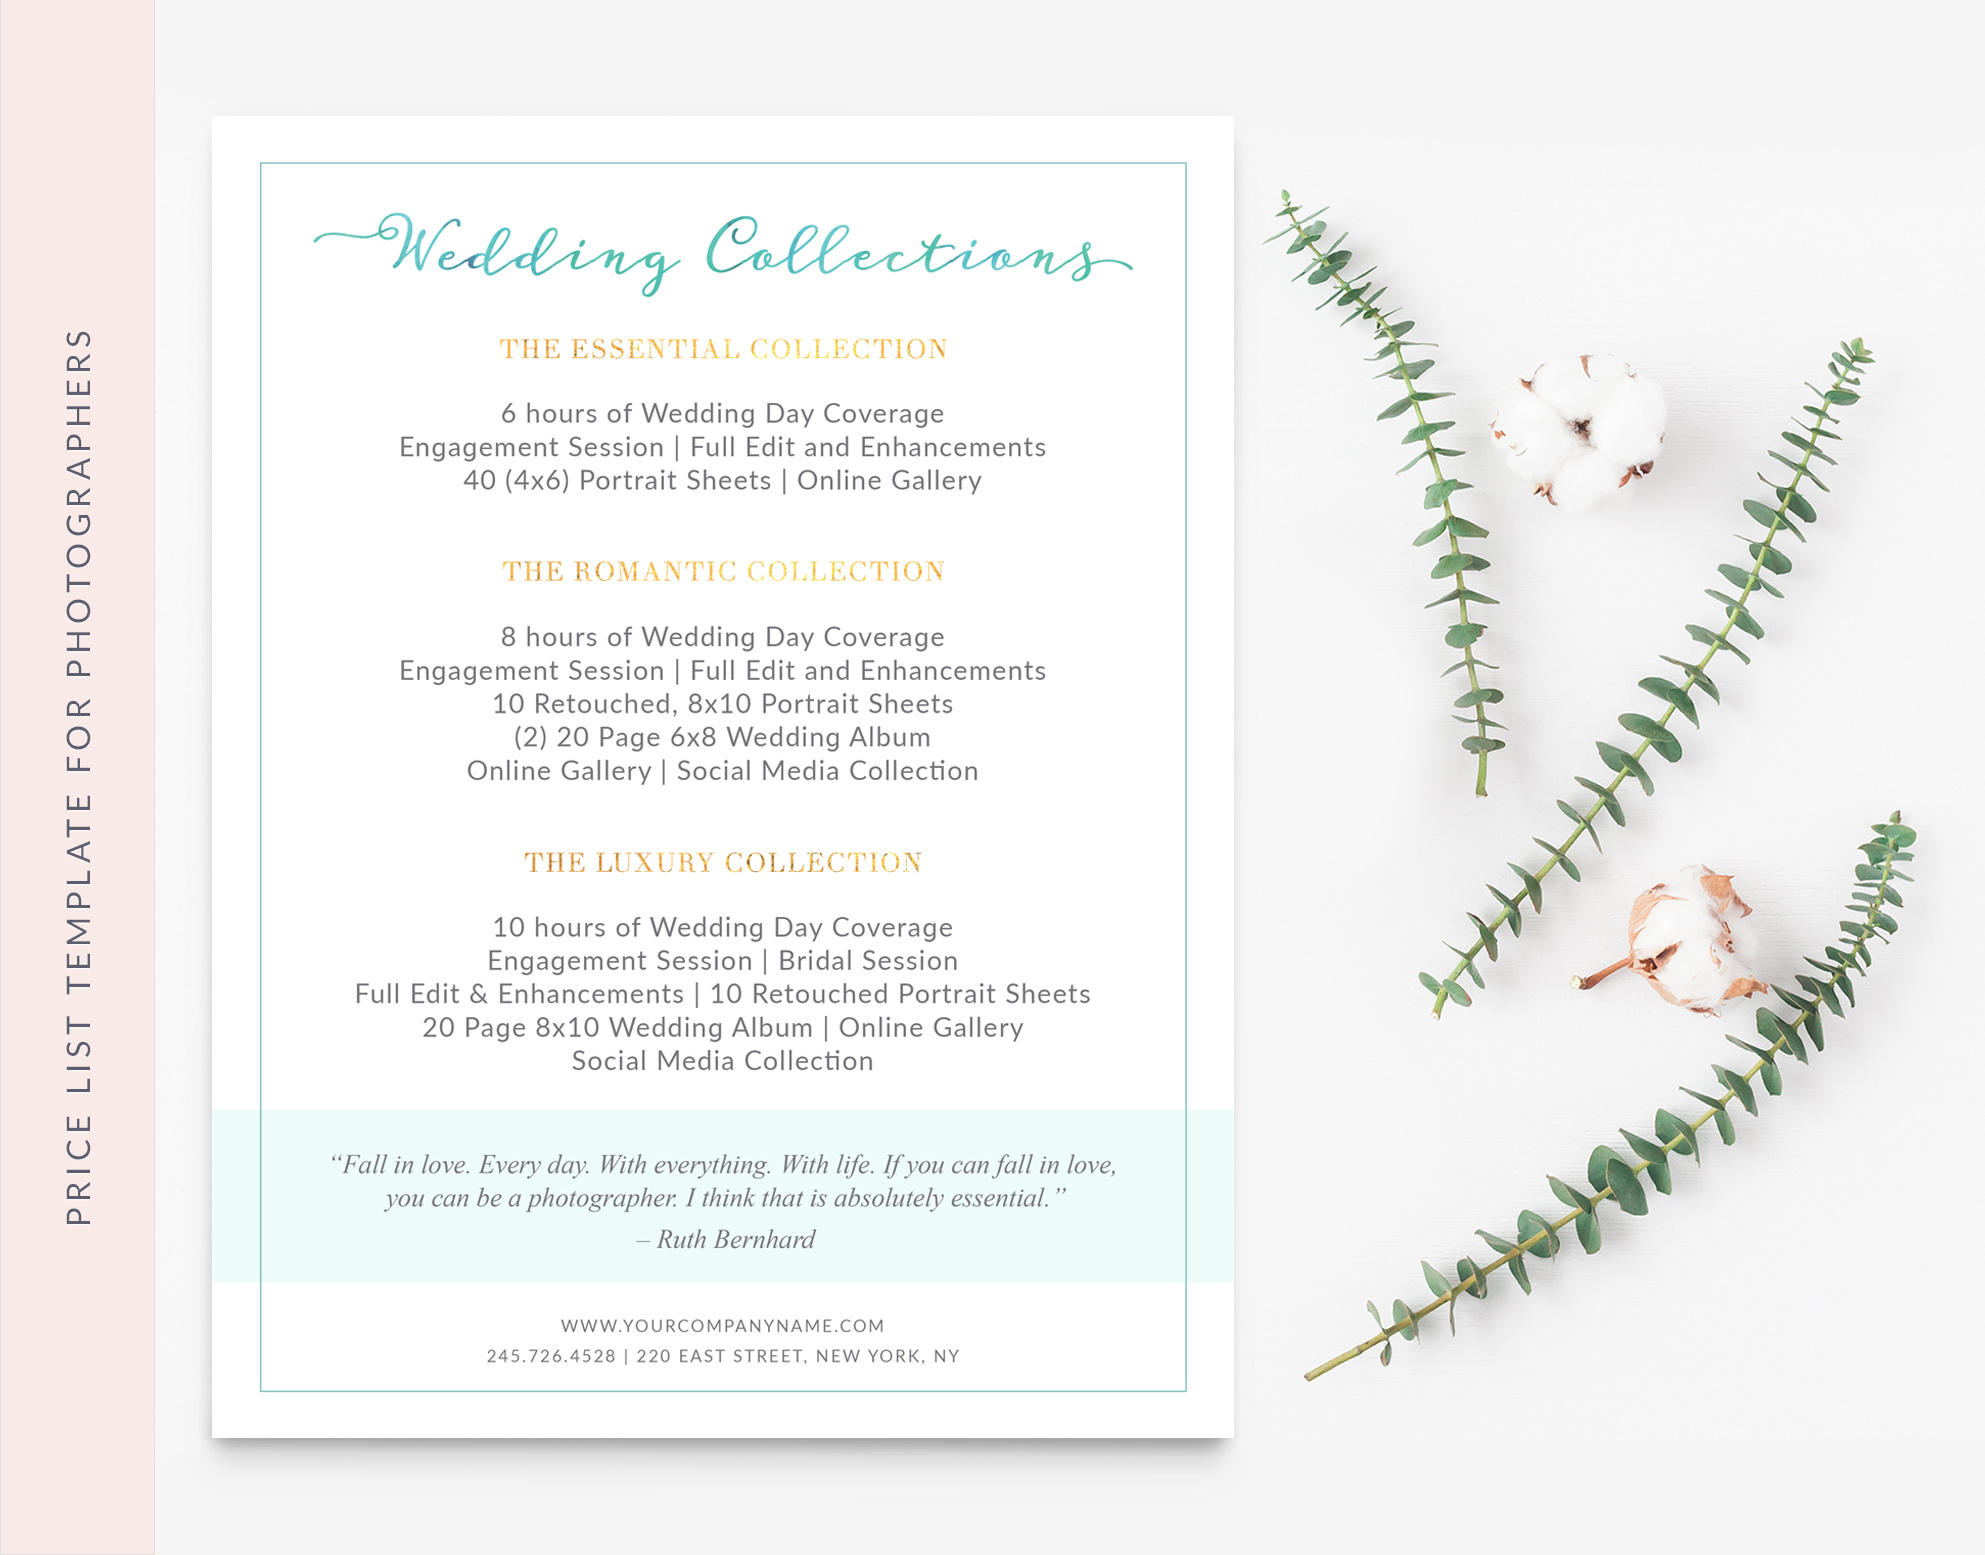 Price Sheet Photography Template - Sweet Dreams